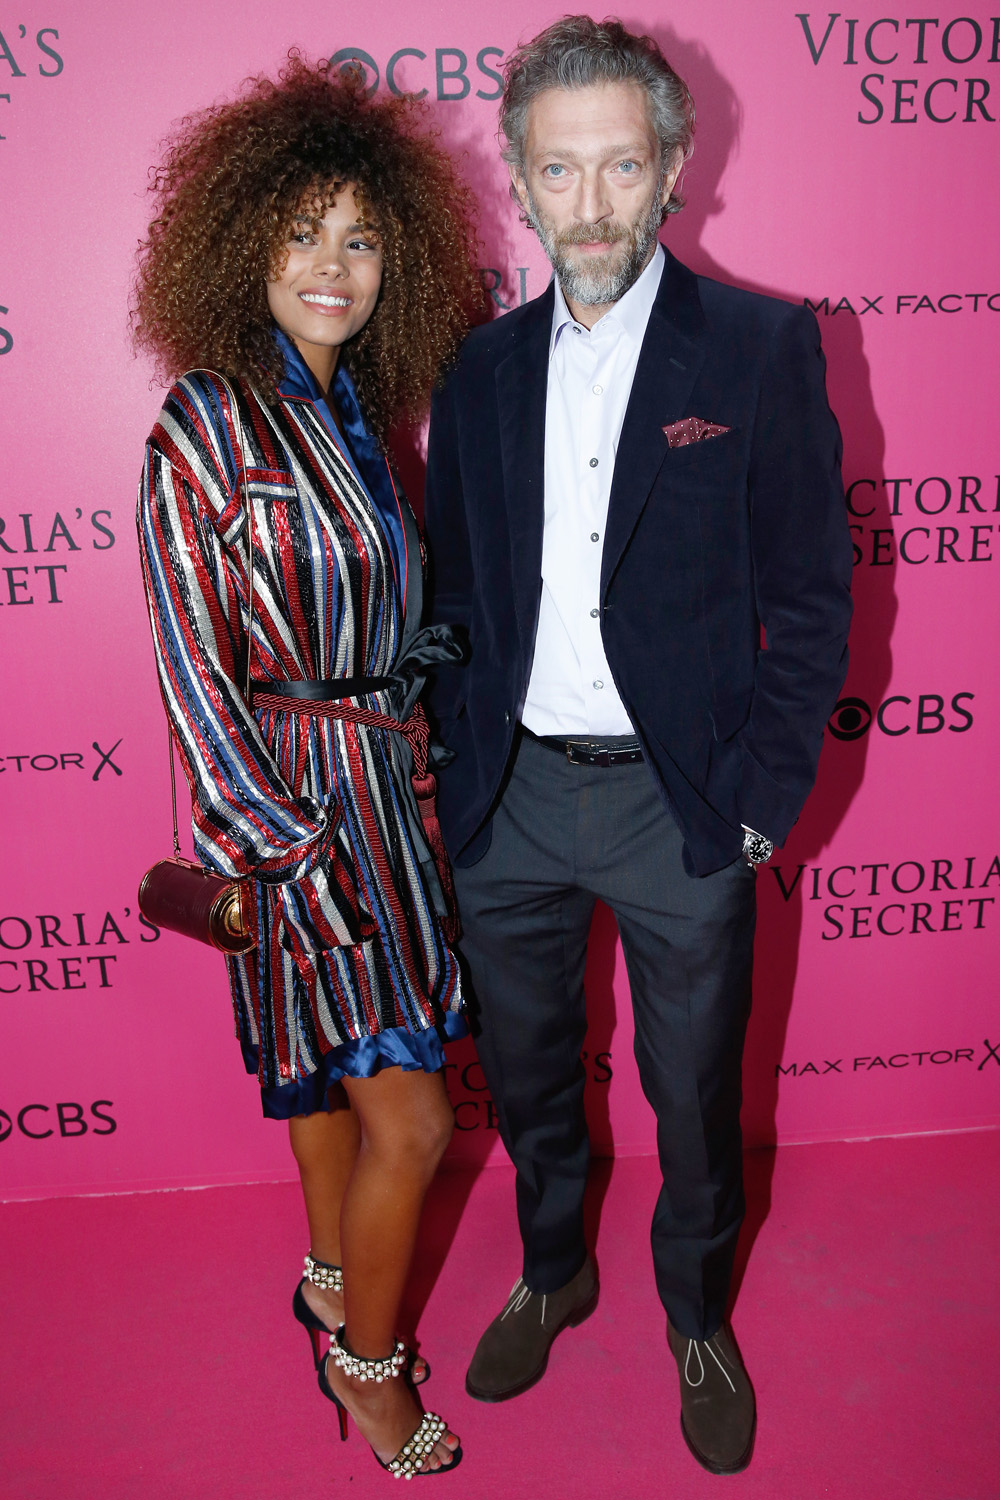 PARIS, FRANCE - NOVEMBER 30:  Actor Vincent Cassel and his companion Tina Kunakey attend the 2016 Victoria's Secret Fashion Show. Held at Grand Palais on November 30, 2016 in Paris, France.  (Photo by Bertrand Rindoff Petroff/Getty Images for Victoria's Secret)